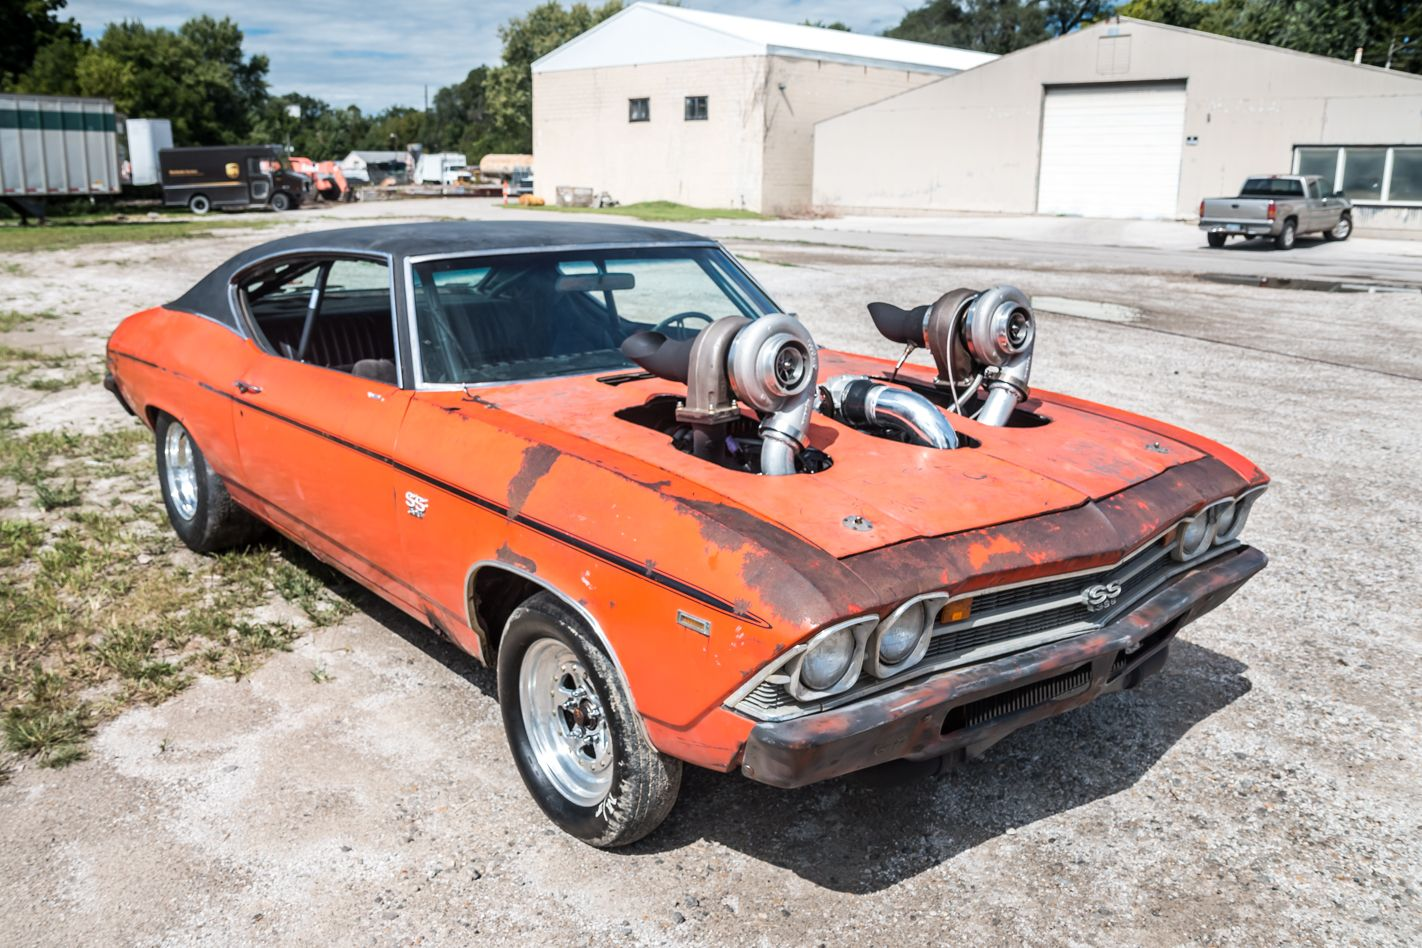 Crazy powerful twin turbo 1969 chevrolet chevelle muscle cars pinterest chevrolet chevelle twin turbo and chevrolet